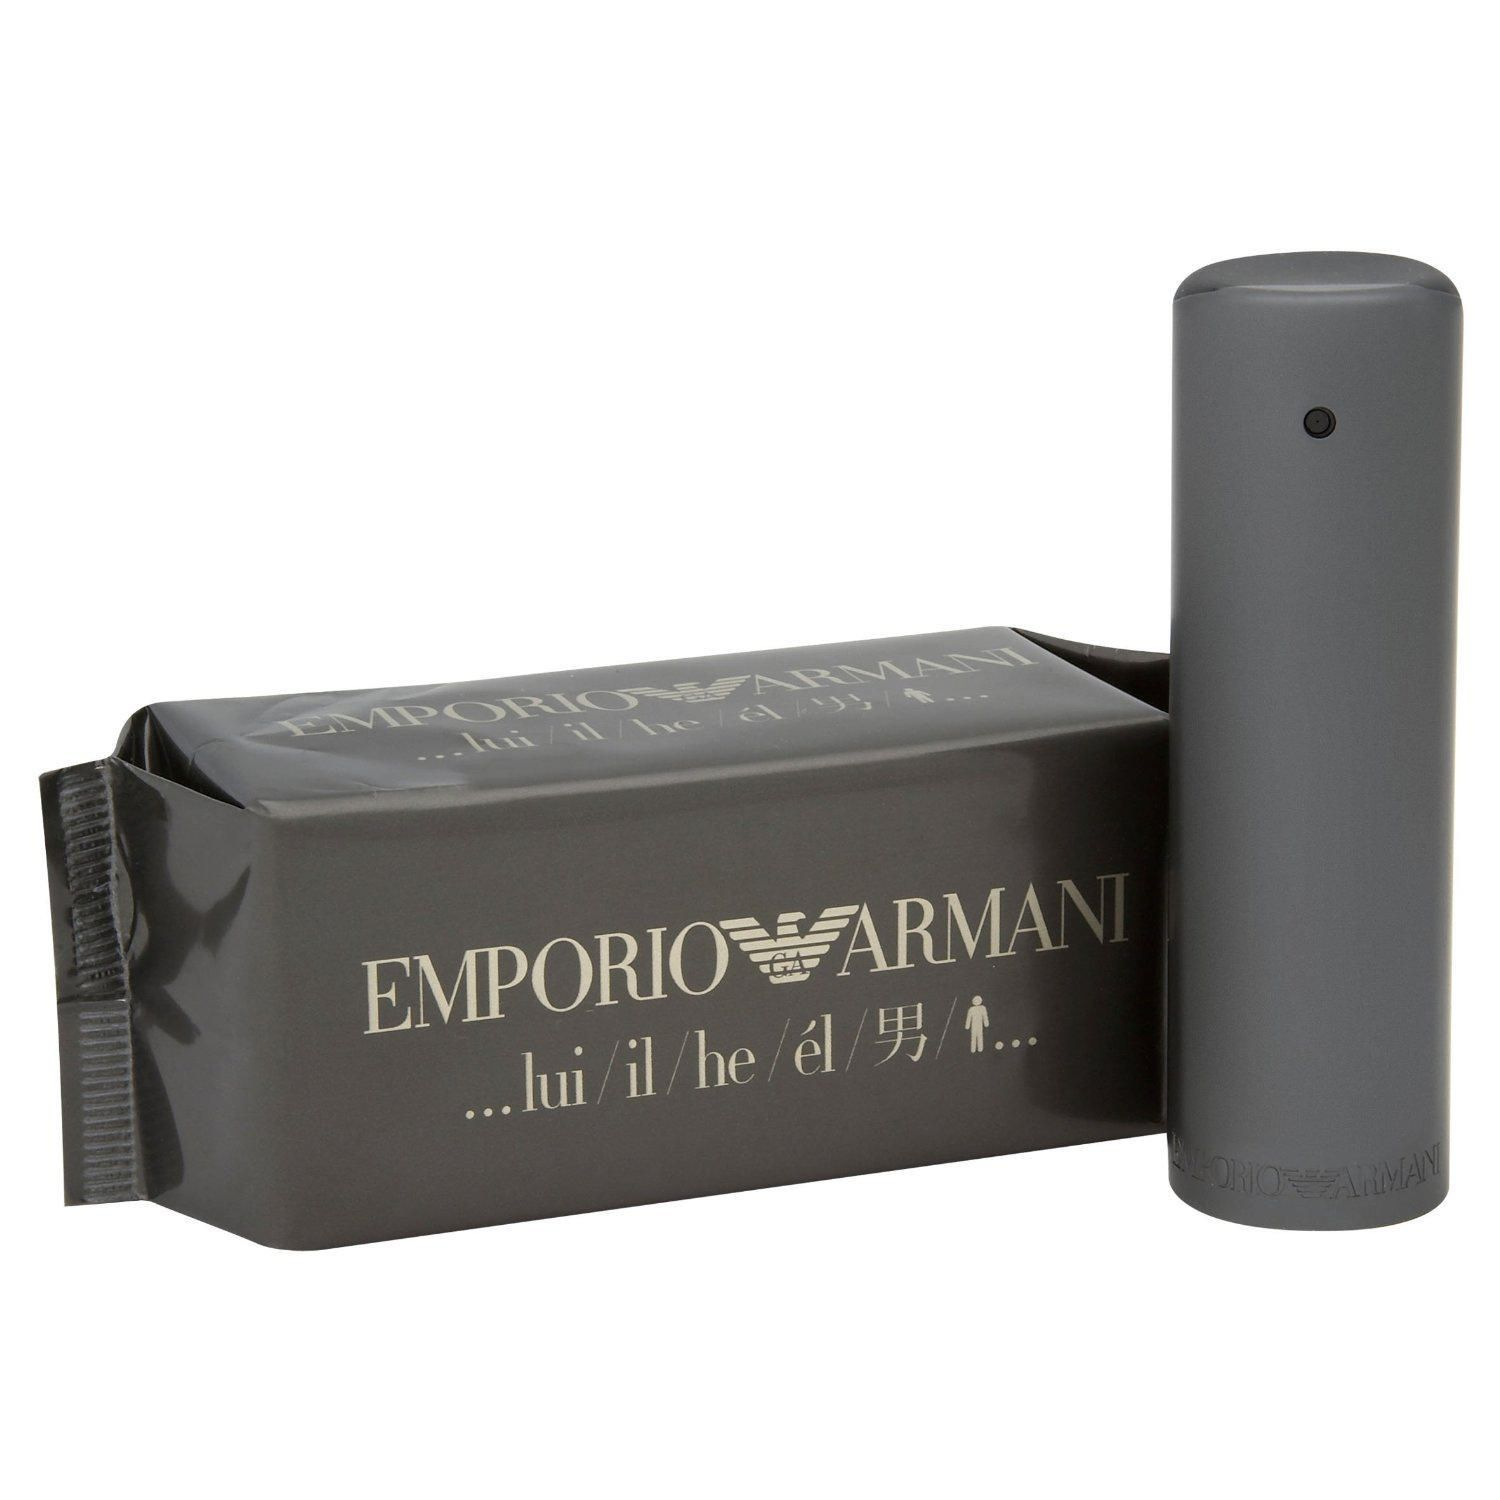 f30024429c7 Giorgio Armani Emporio HE Eau De Toilette Spray for MEN 50 ml ...